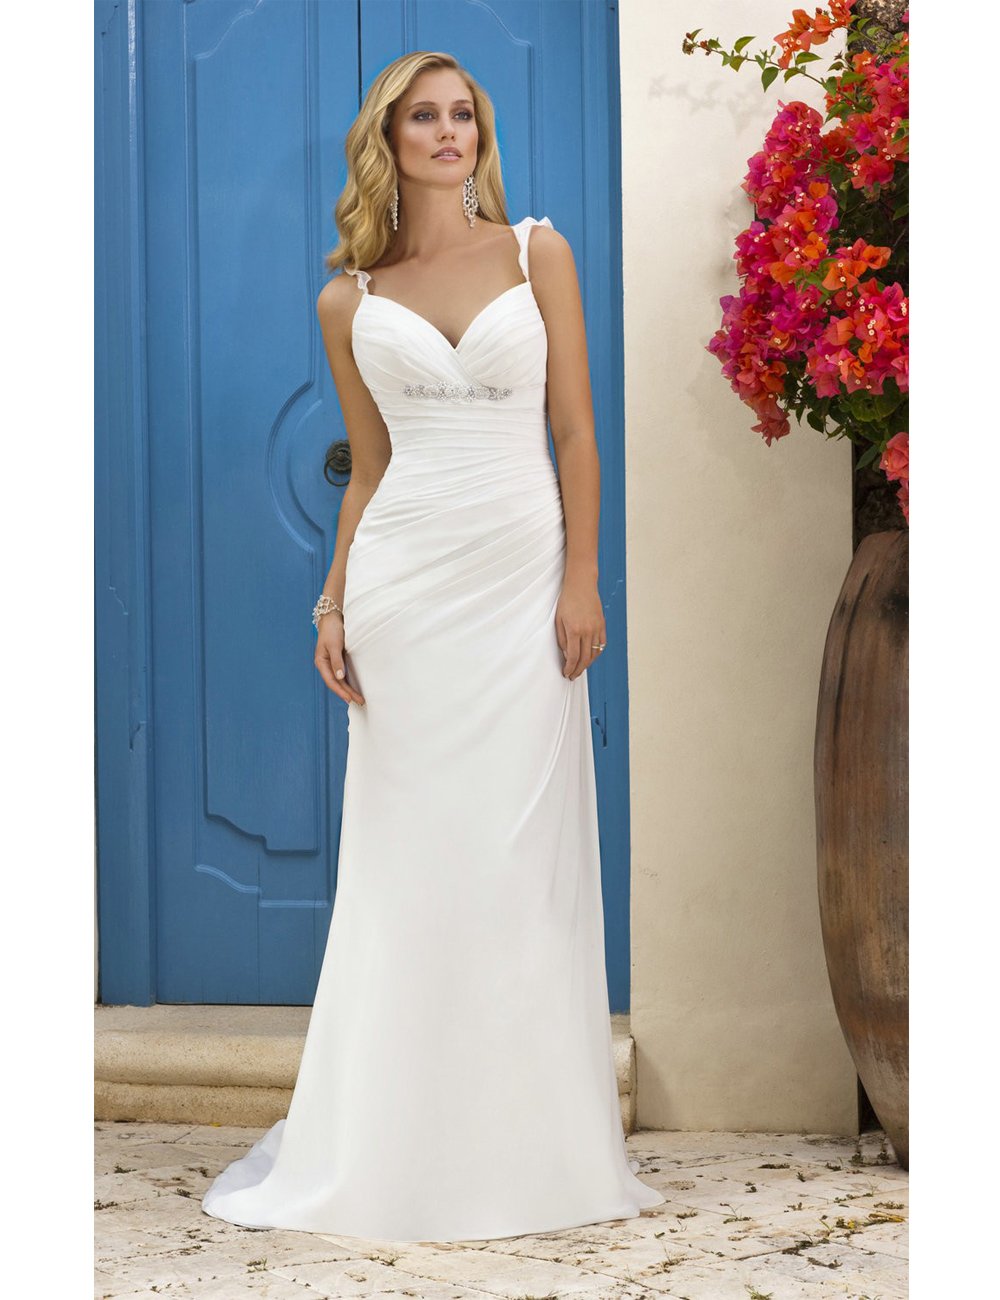 Compare Prices on Western Wedding Dresses- Online Shopping/Buy Low ...